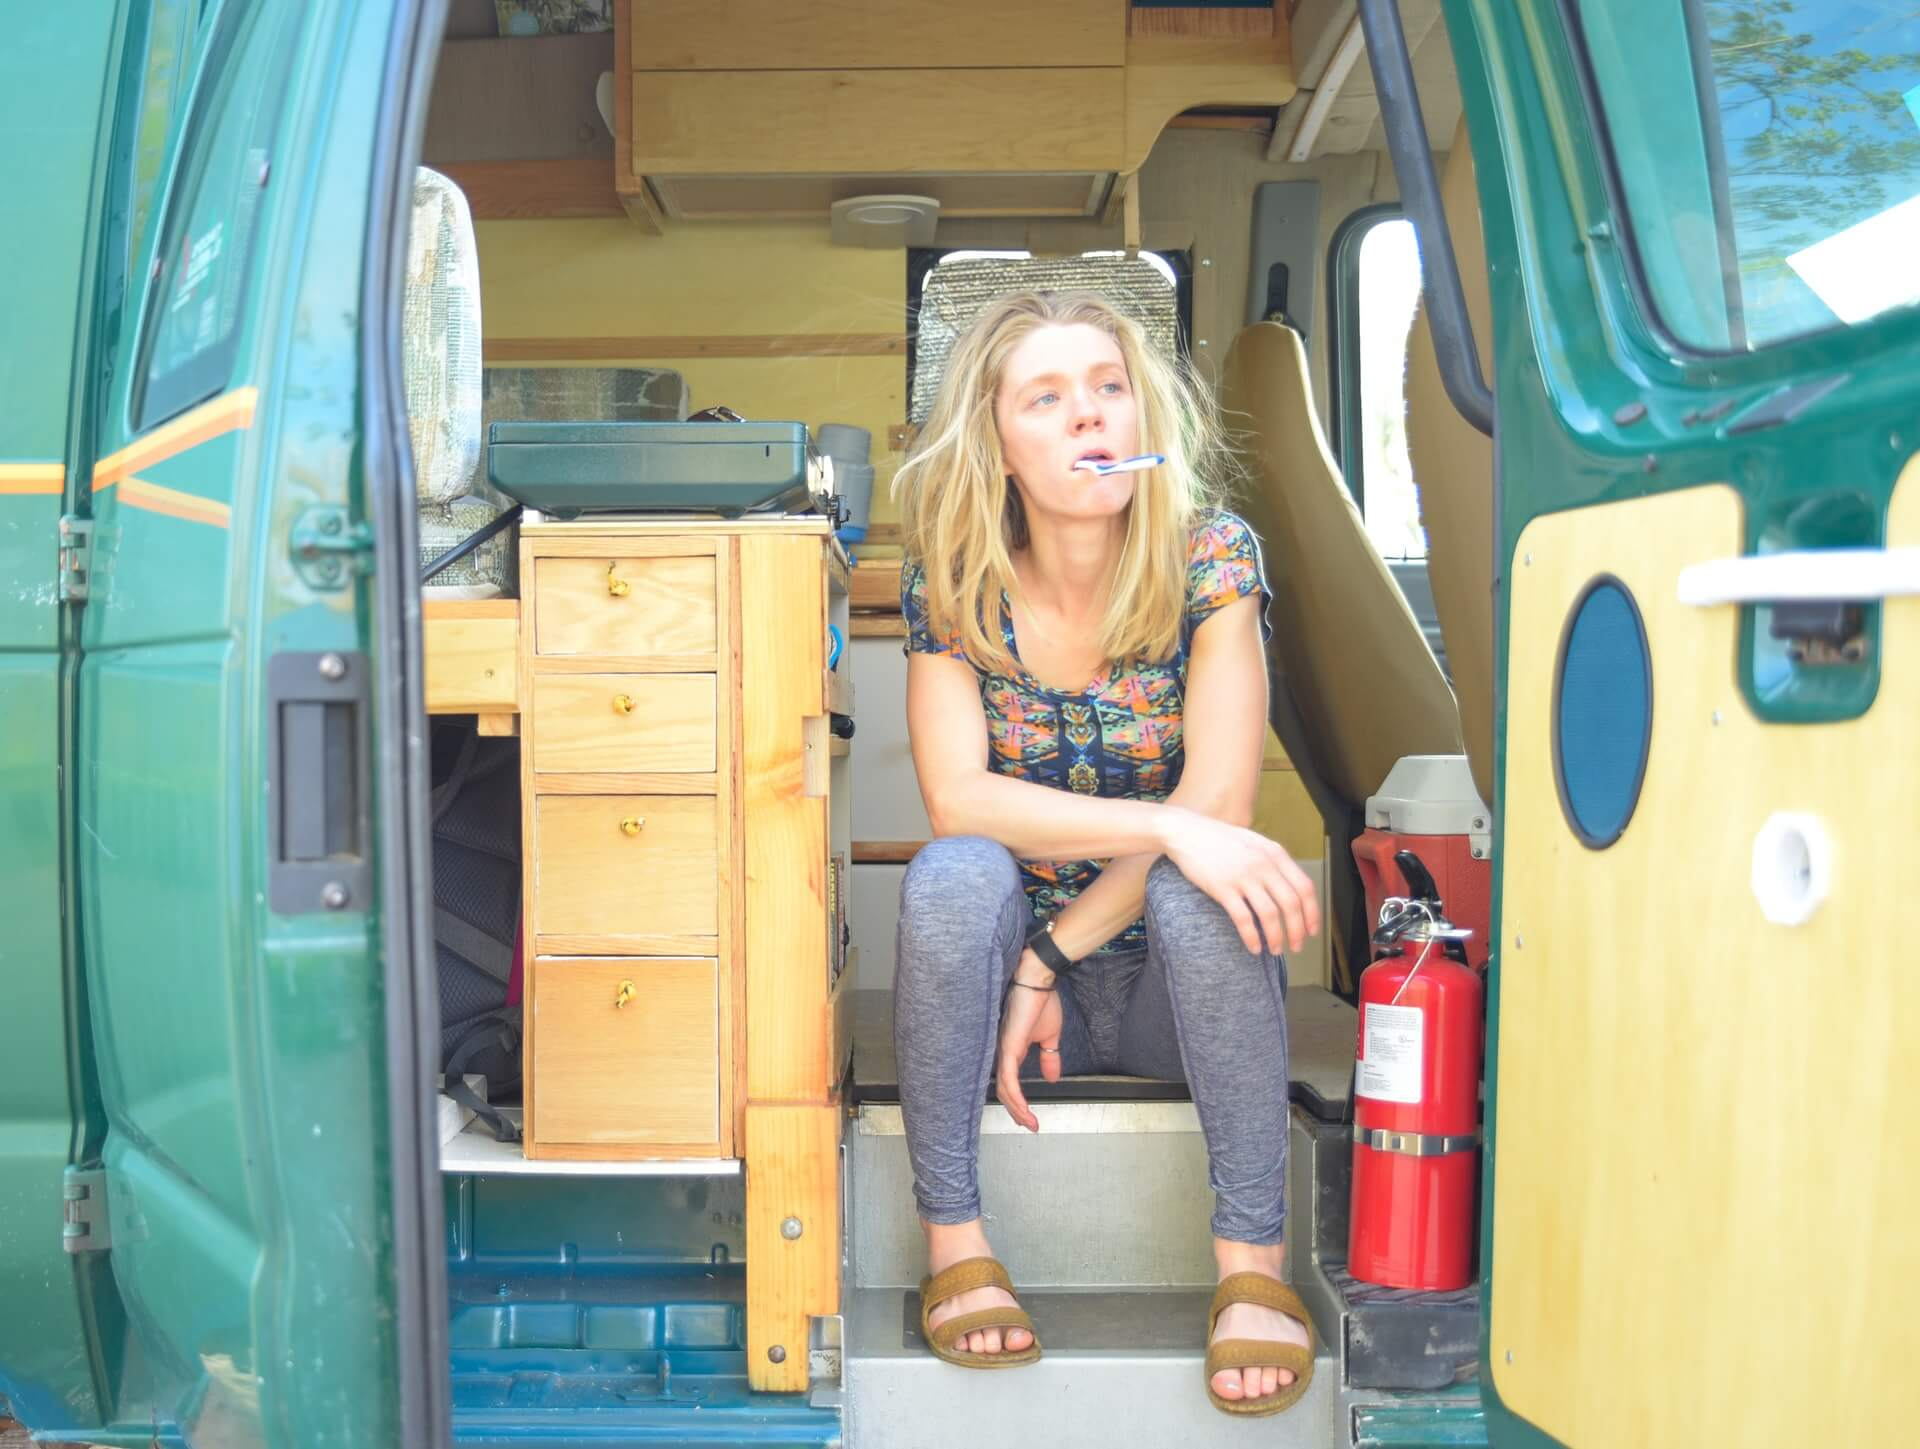 A woman brushes here teeth in a neatly packed motorhome